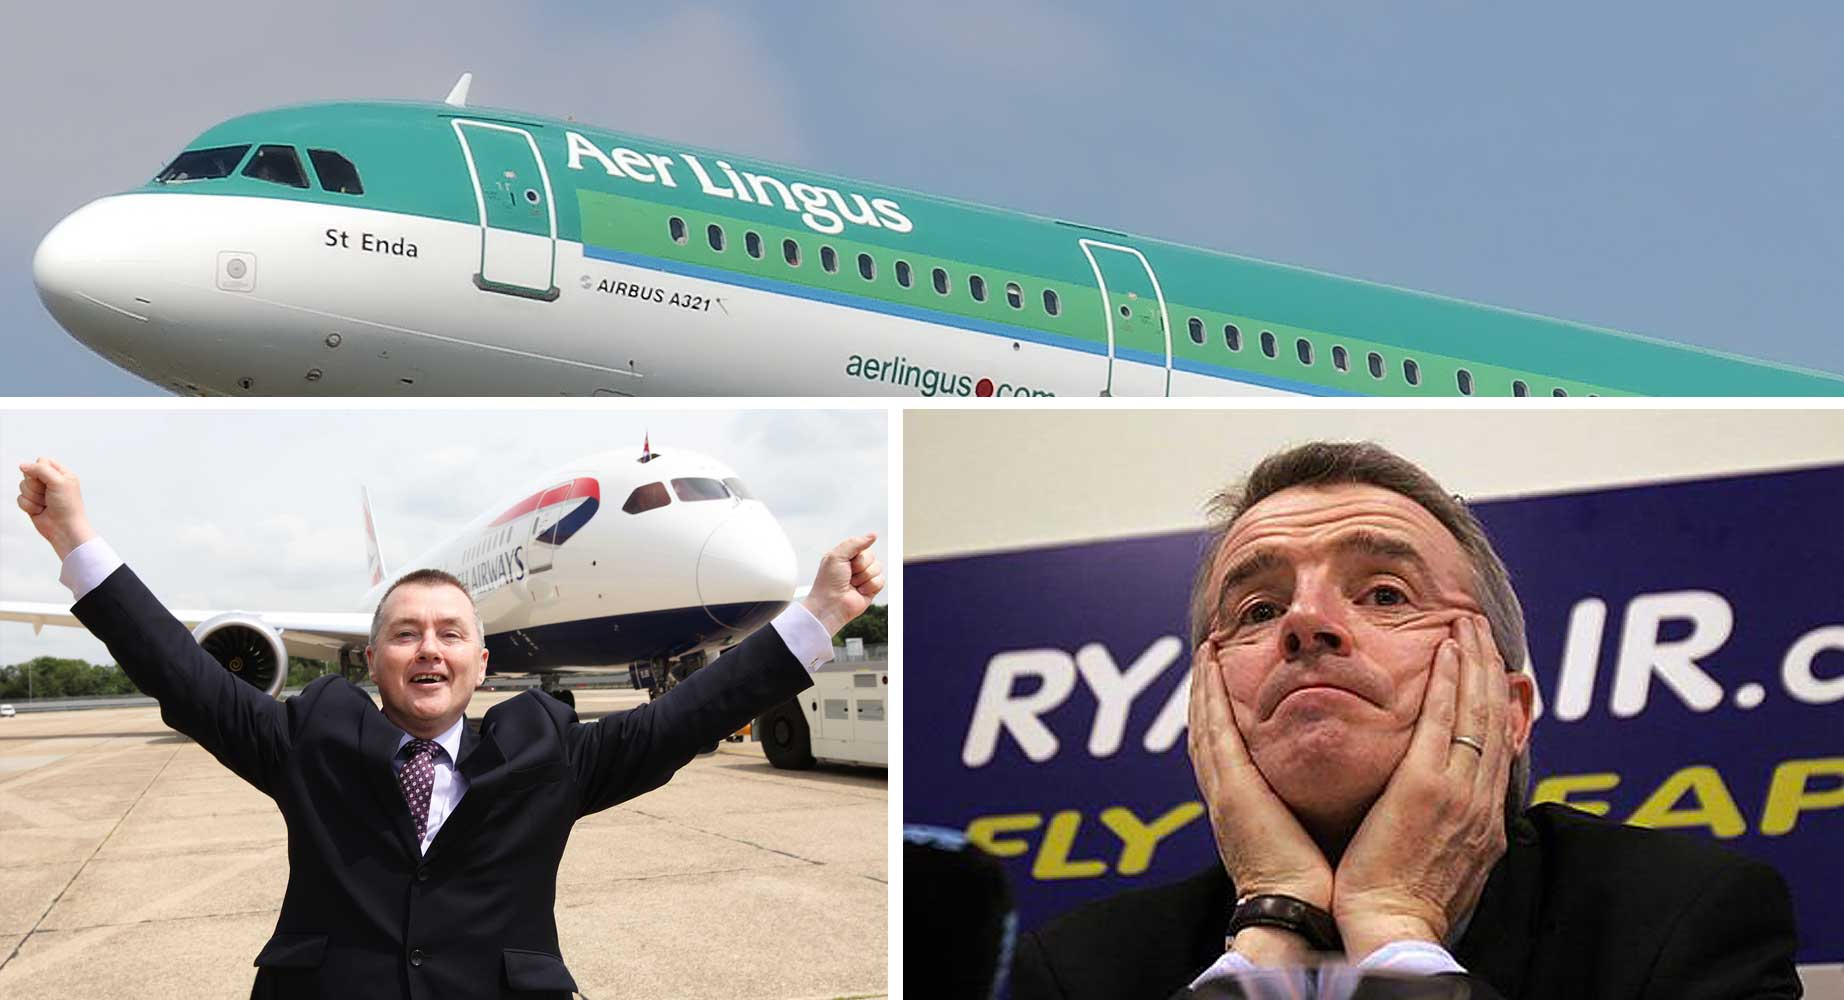 Does the Aer Lingus IAG deal face Ryanair opposition?